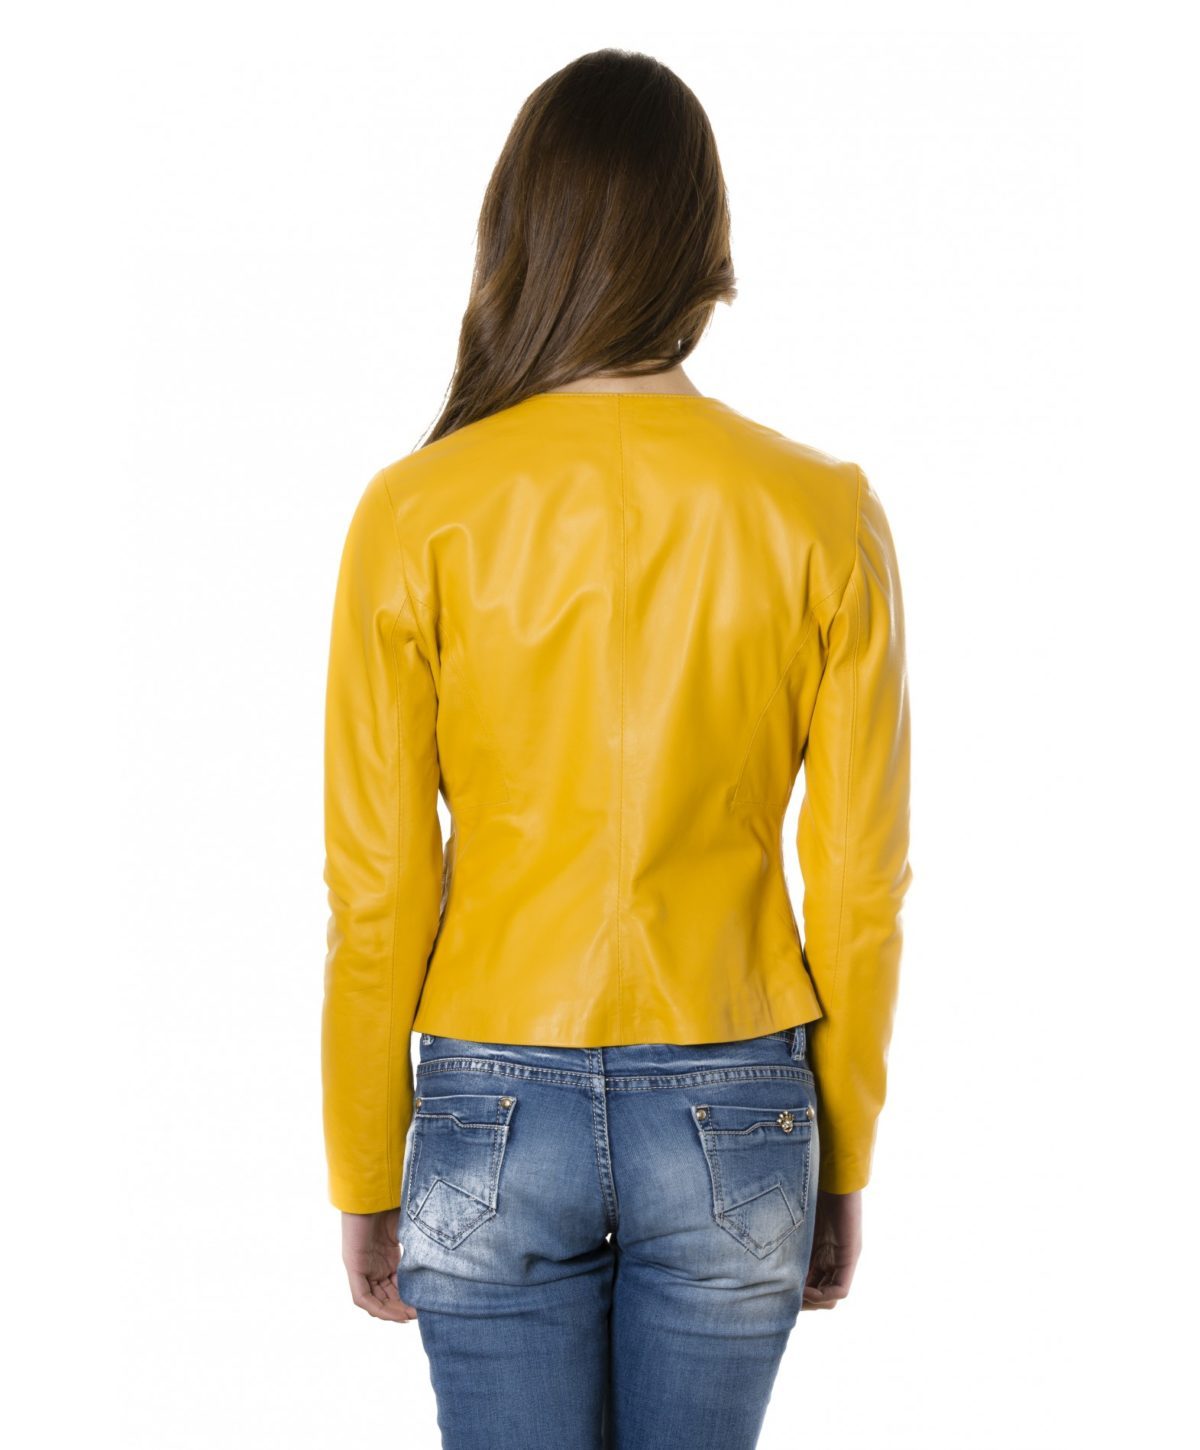 clear-yellow-color-lamb-leather-round-neck-jacket (4)